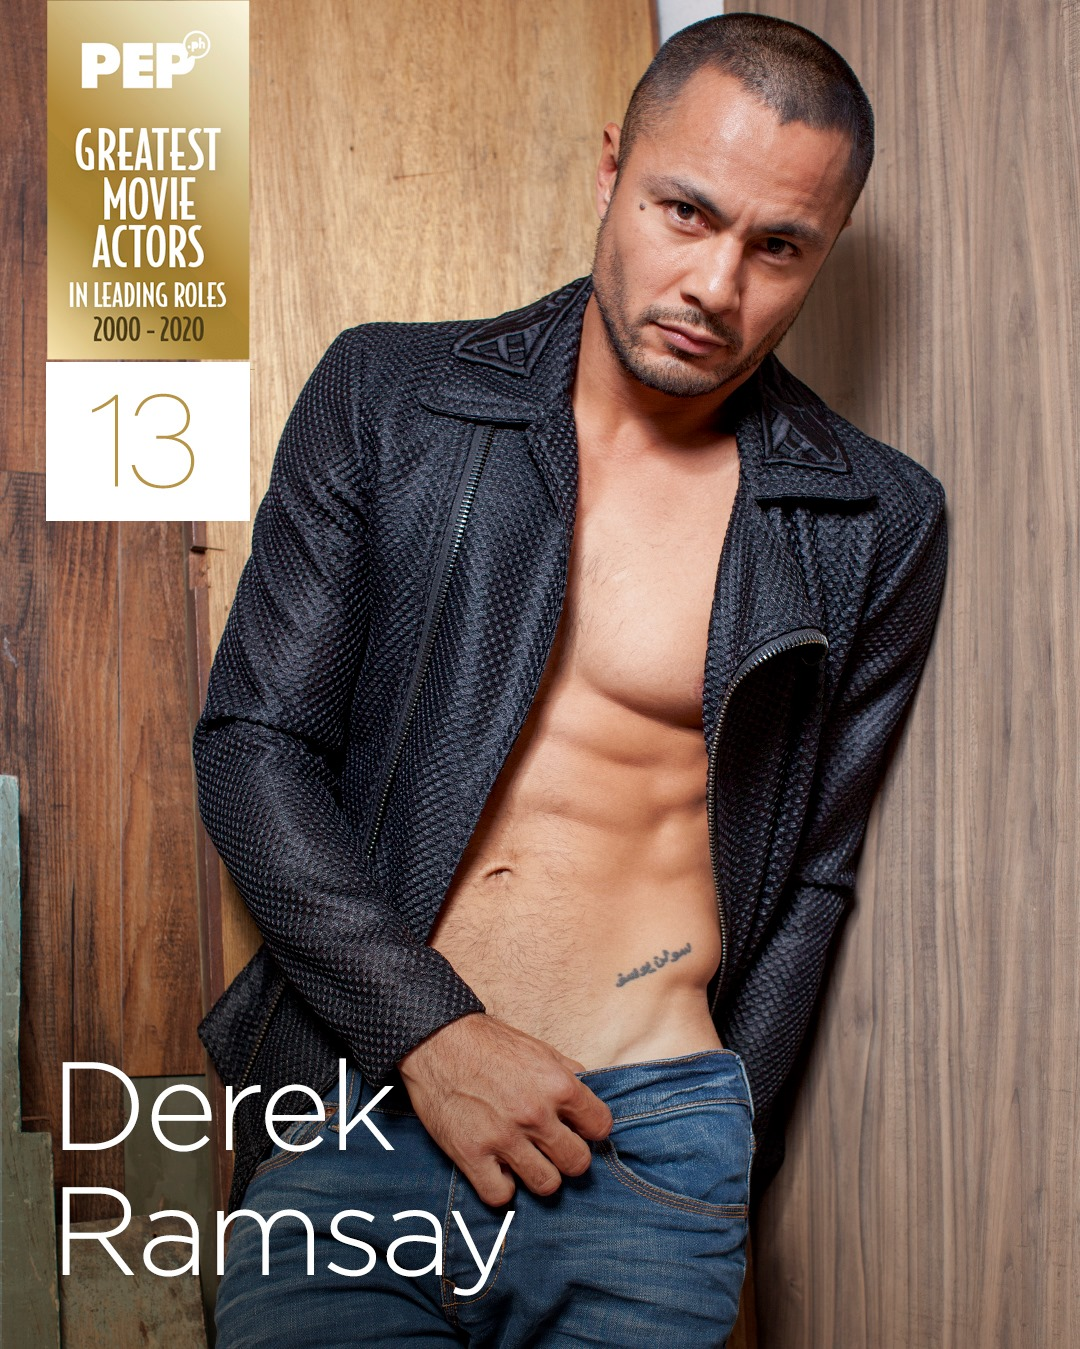 Derek Ramsay, 15 Greatest Movie Actors in Leading Roles